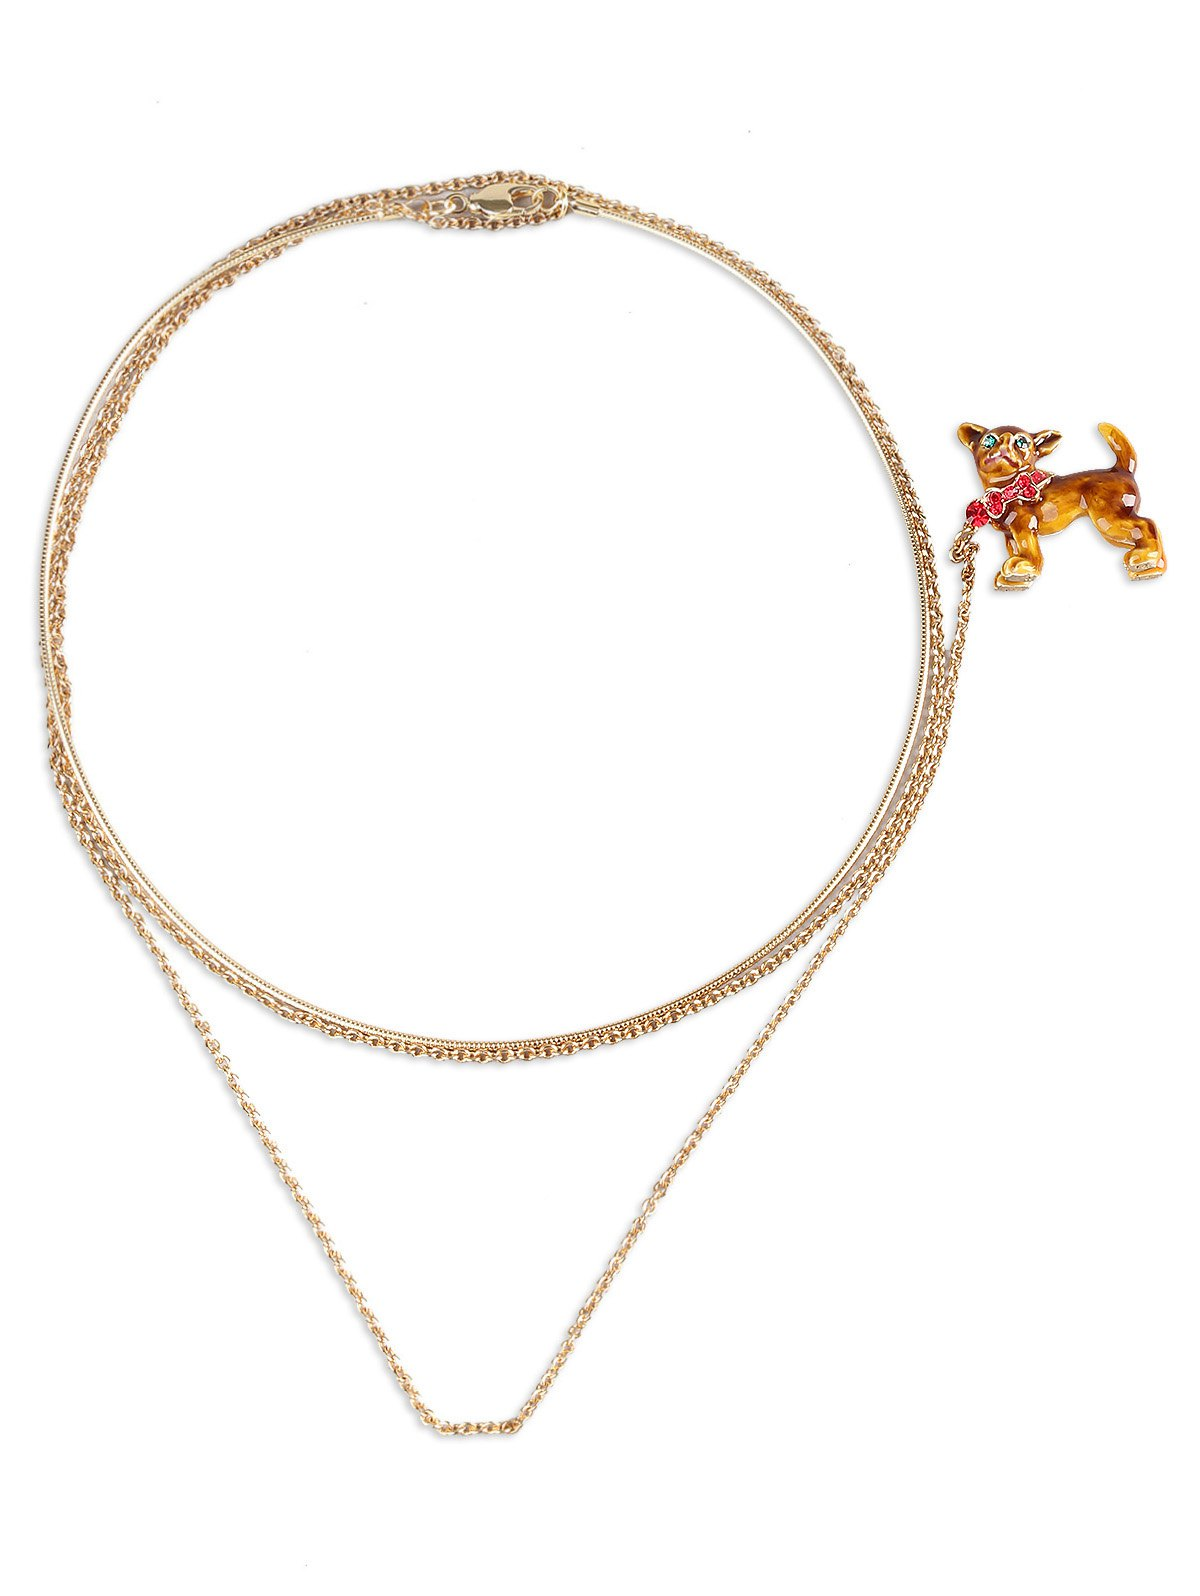 Dog Shaped Brooch with Collar Necklace - CARAMEL